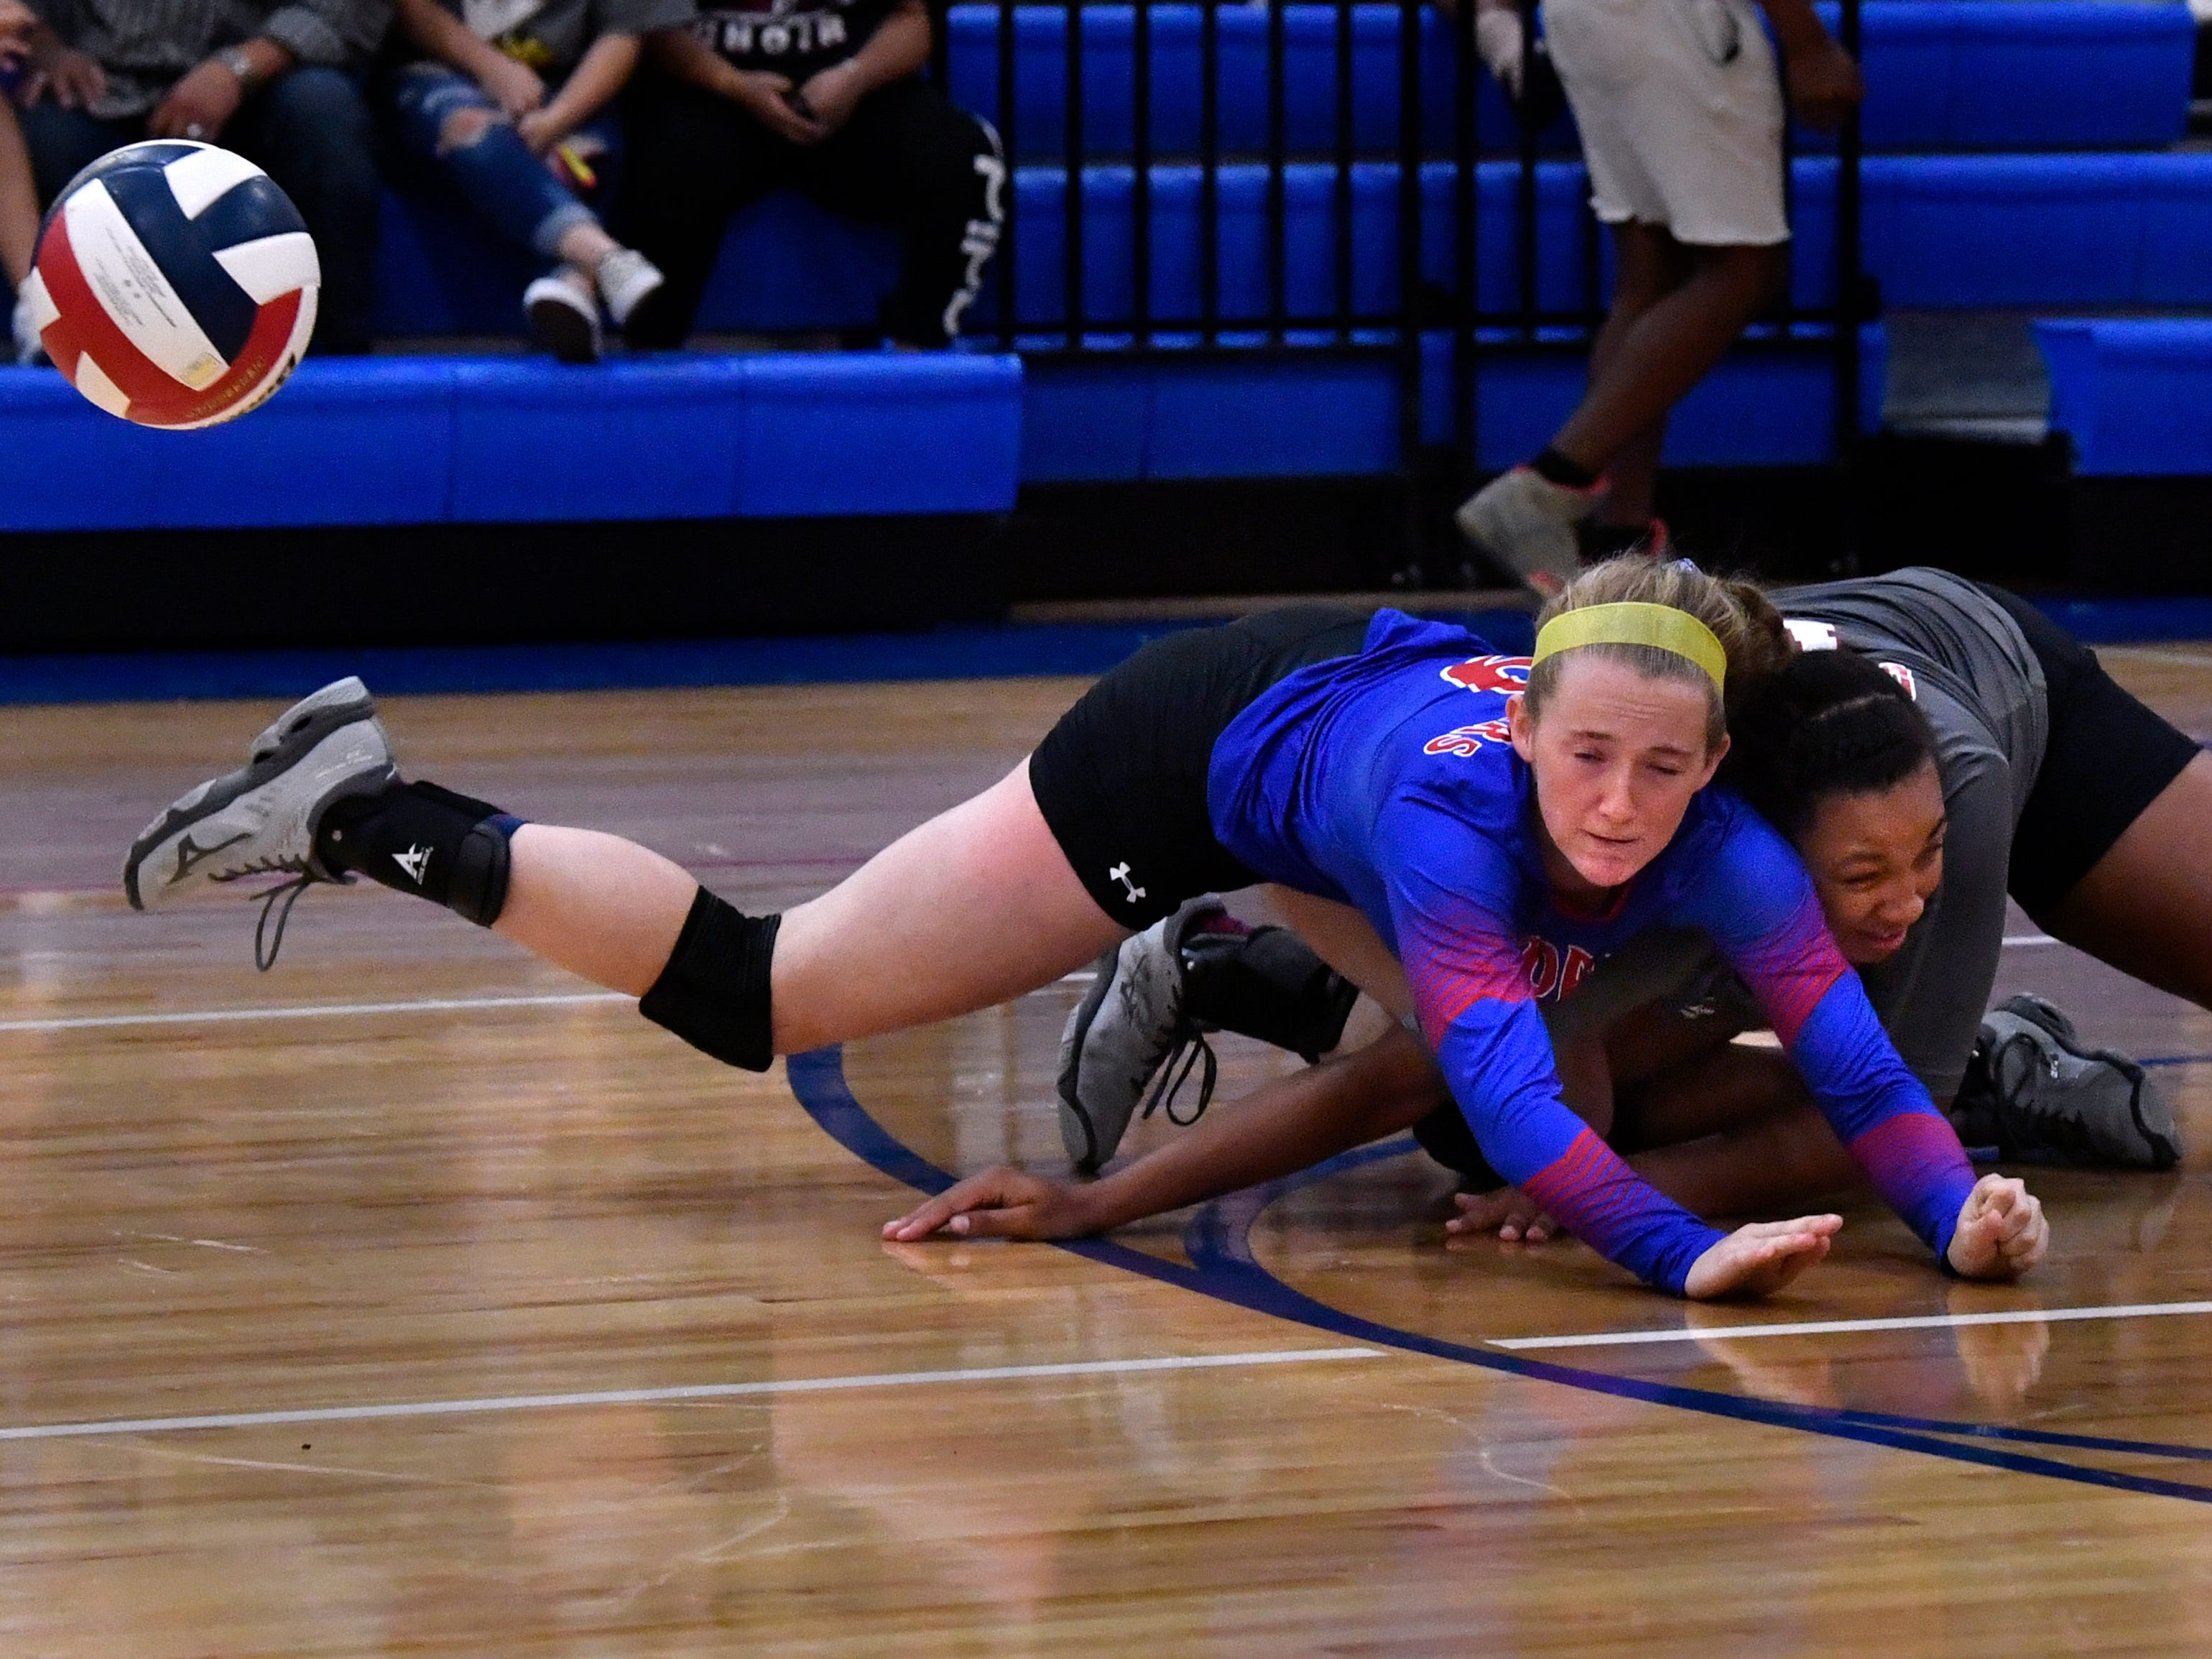 Cooper High's Caylee Collier collides with teammate Jennika Willis as they both dive for the ball. The girls appeared to be uninjured and continued to play. Abilene High won the crosstown volleyball game Tuesday August 7, 2018 against Cooper High in the best-of-five match, 25-21, 16-25, 25-20, 17-25, 15-7.